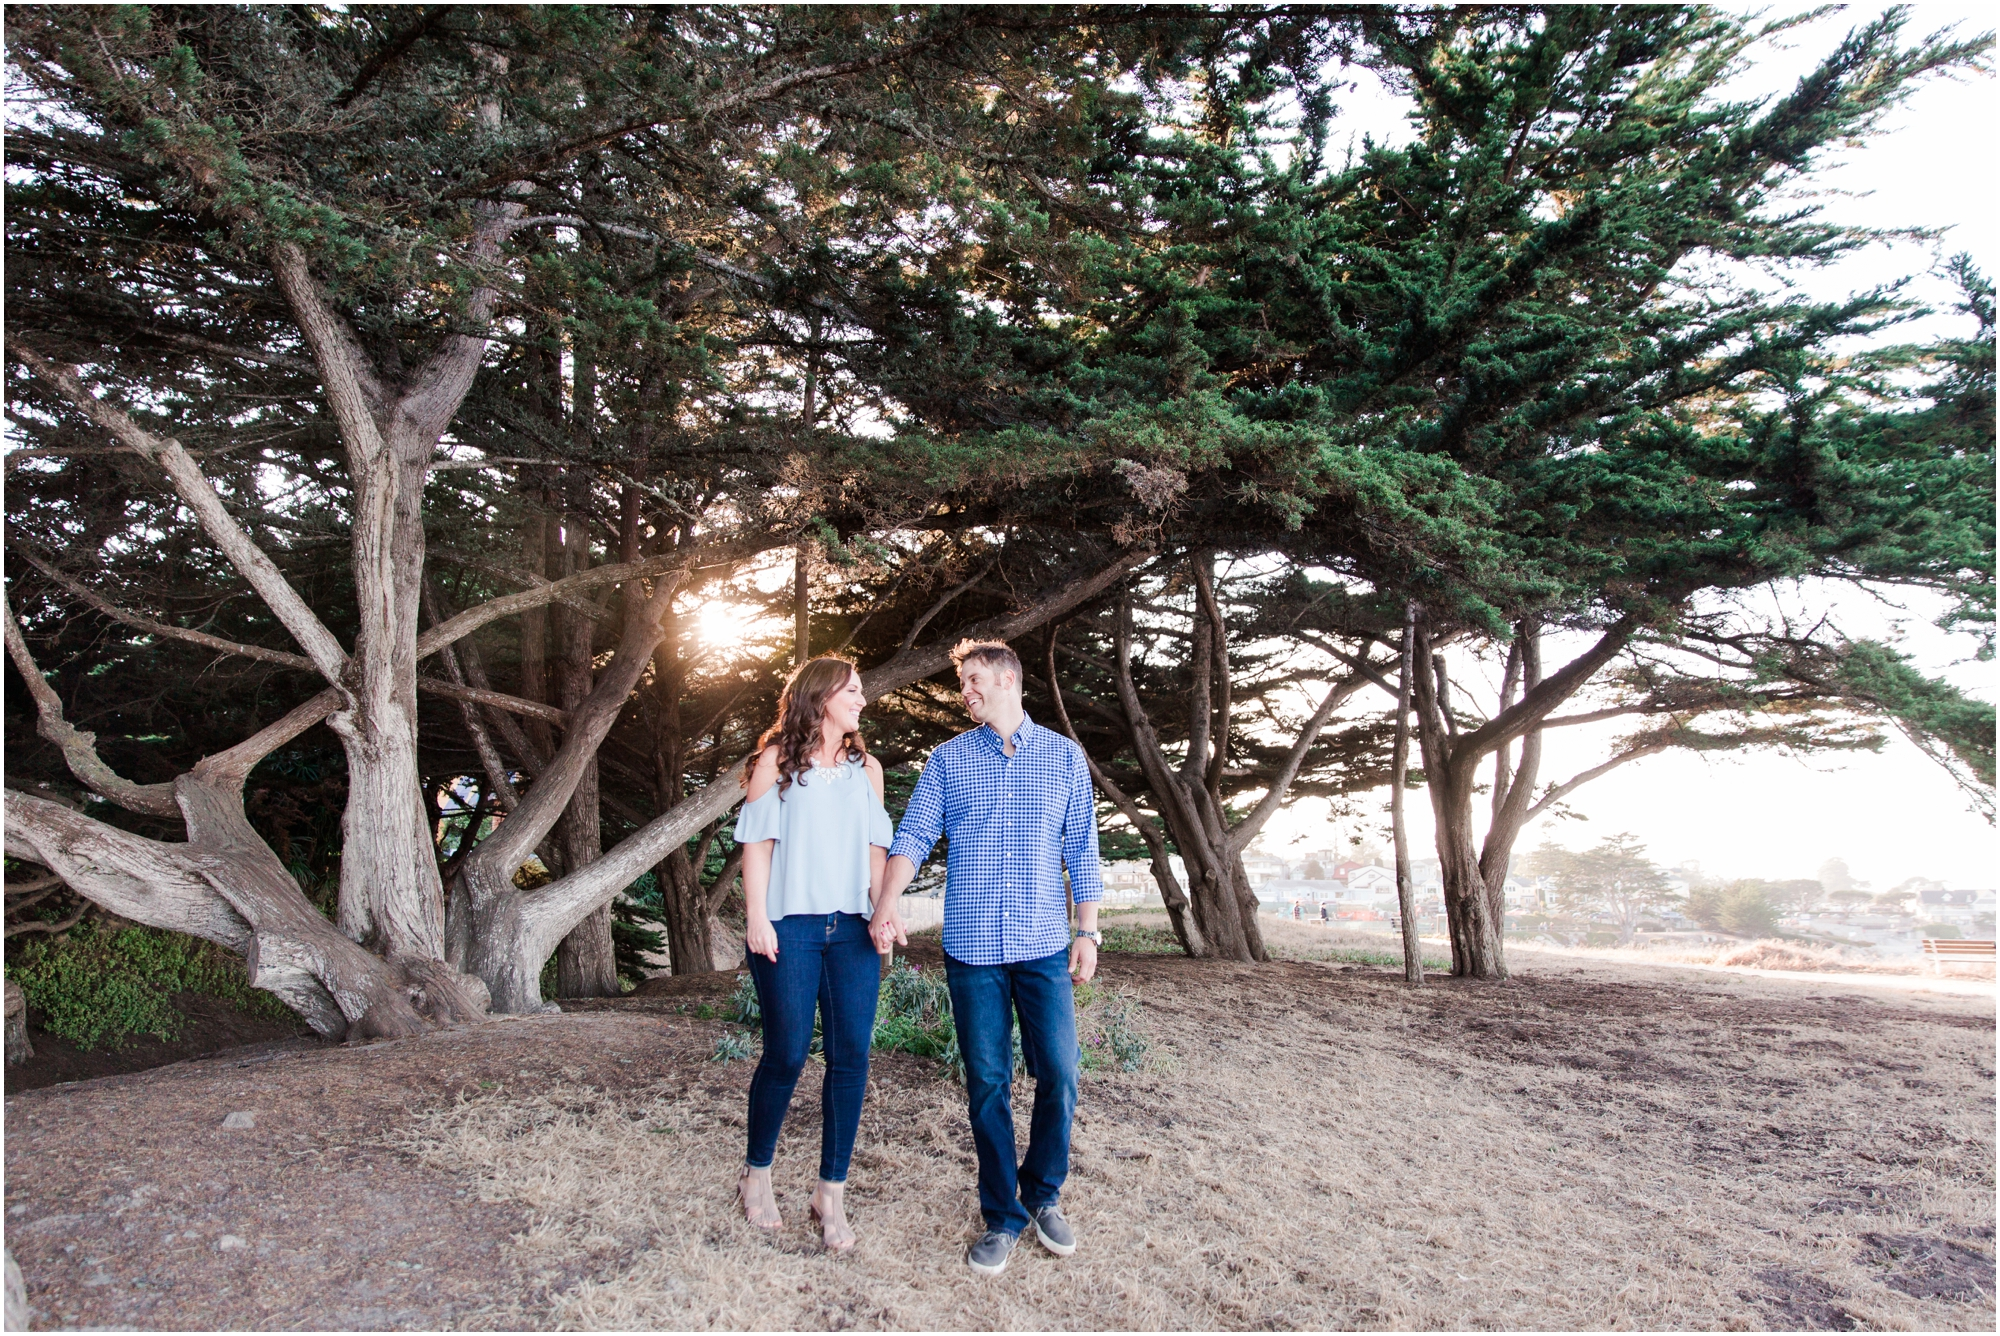 Berwick Park Monterey engagement pictures by Briana Calderon Photography_2390.jpg